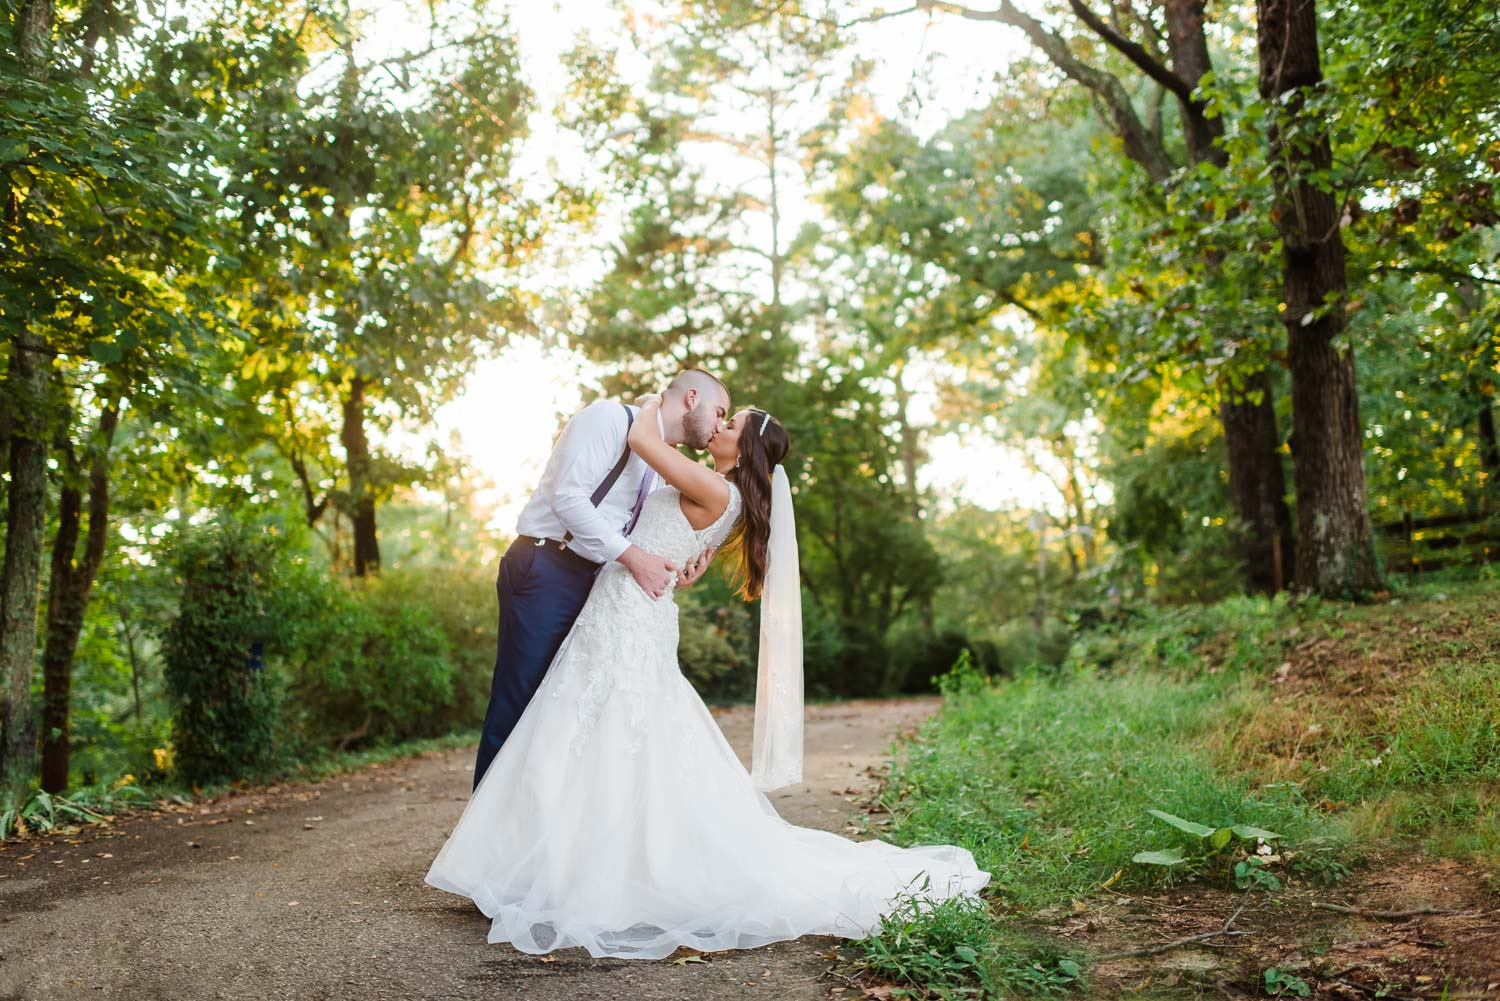 wedding couple outside at sunset in Knoxville TN with sunlight coming through the trees onto them.